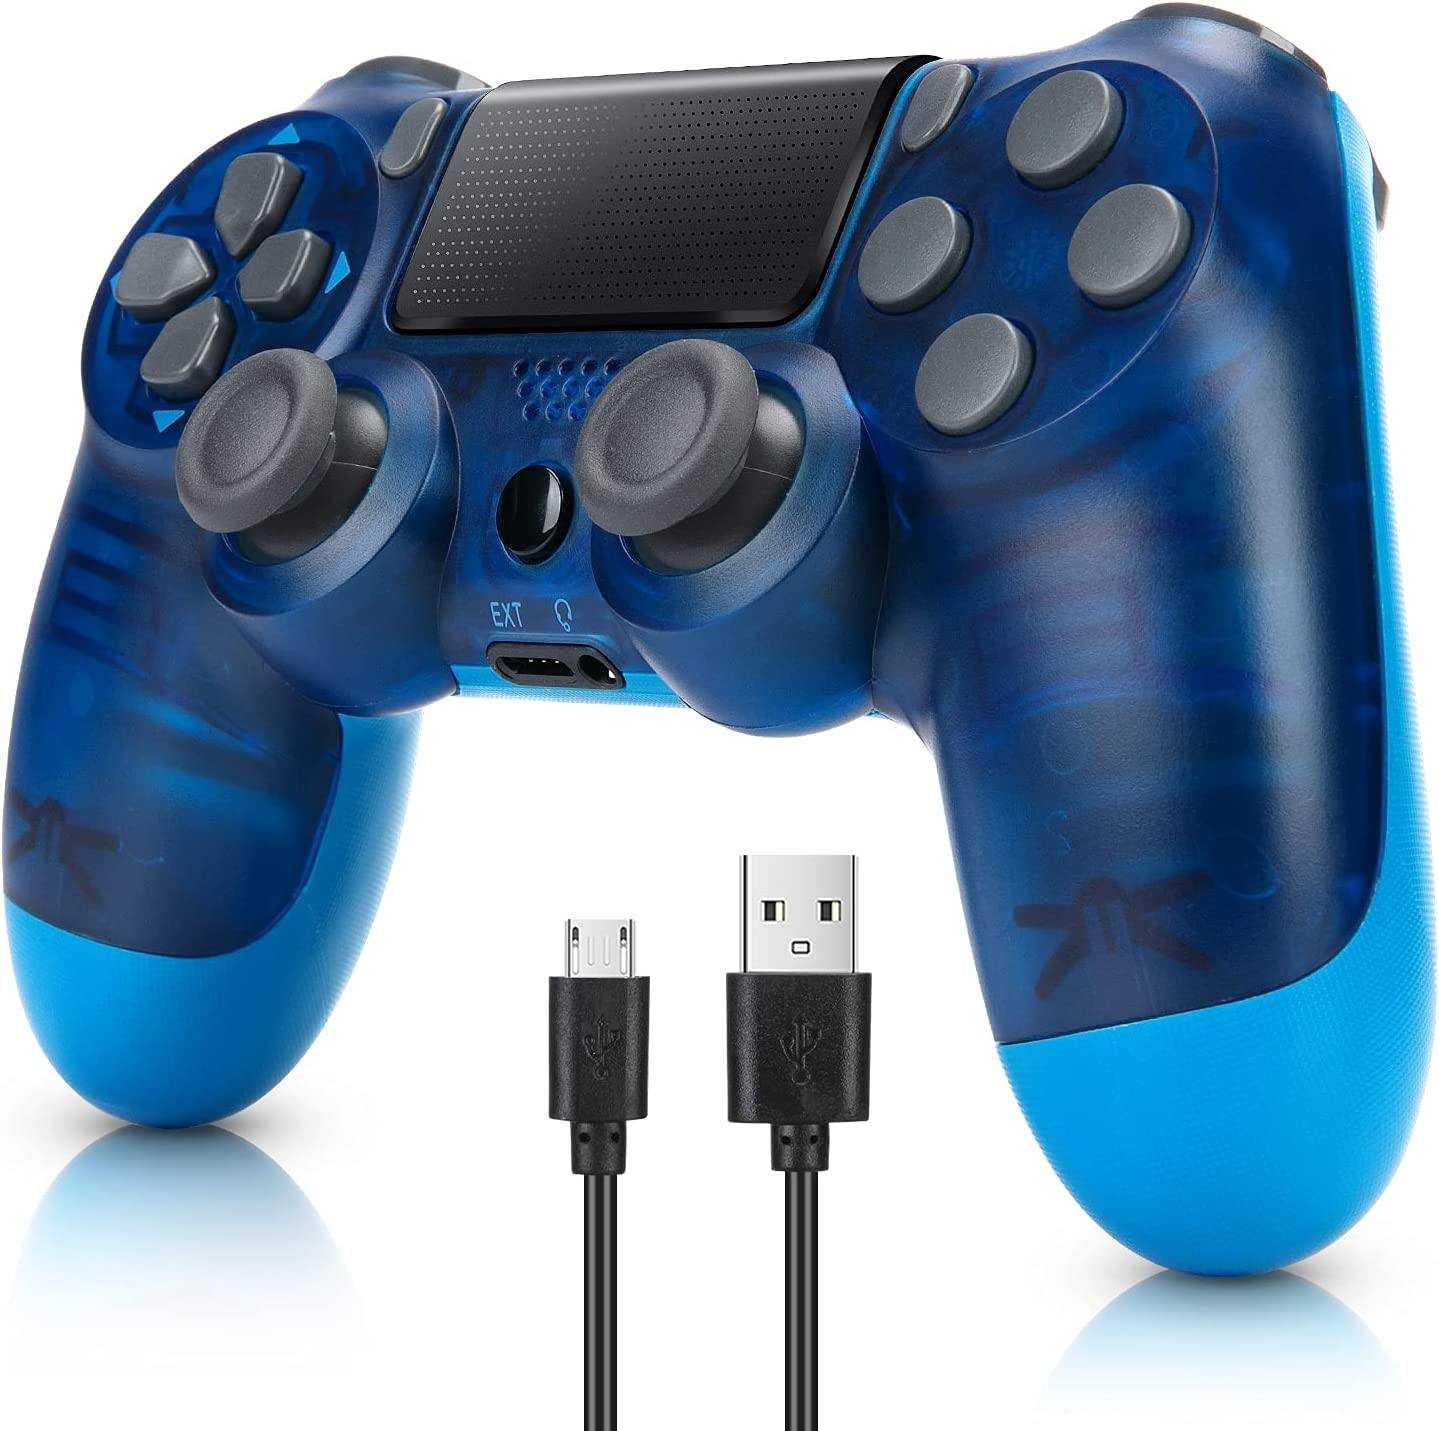 Wireless Game Max 71% OFF Controller Compatible with Slim Outstanding Pro PS-4 Console